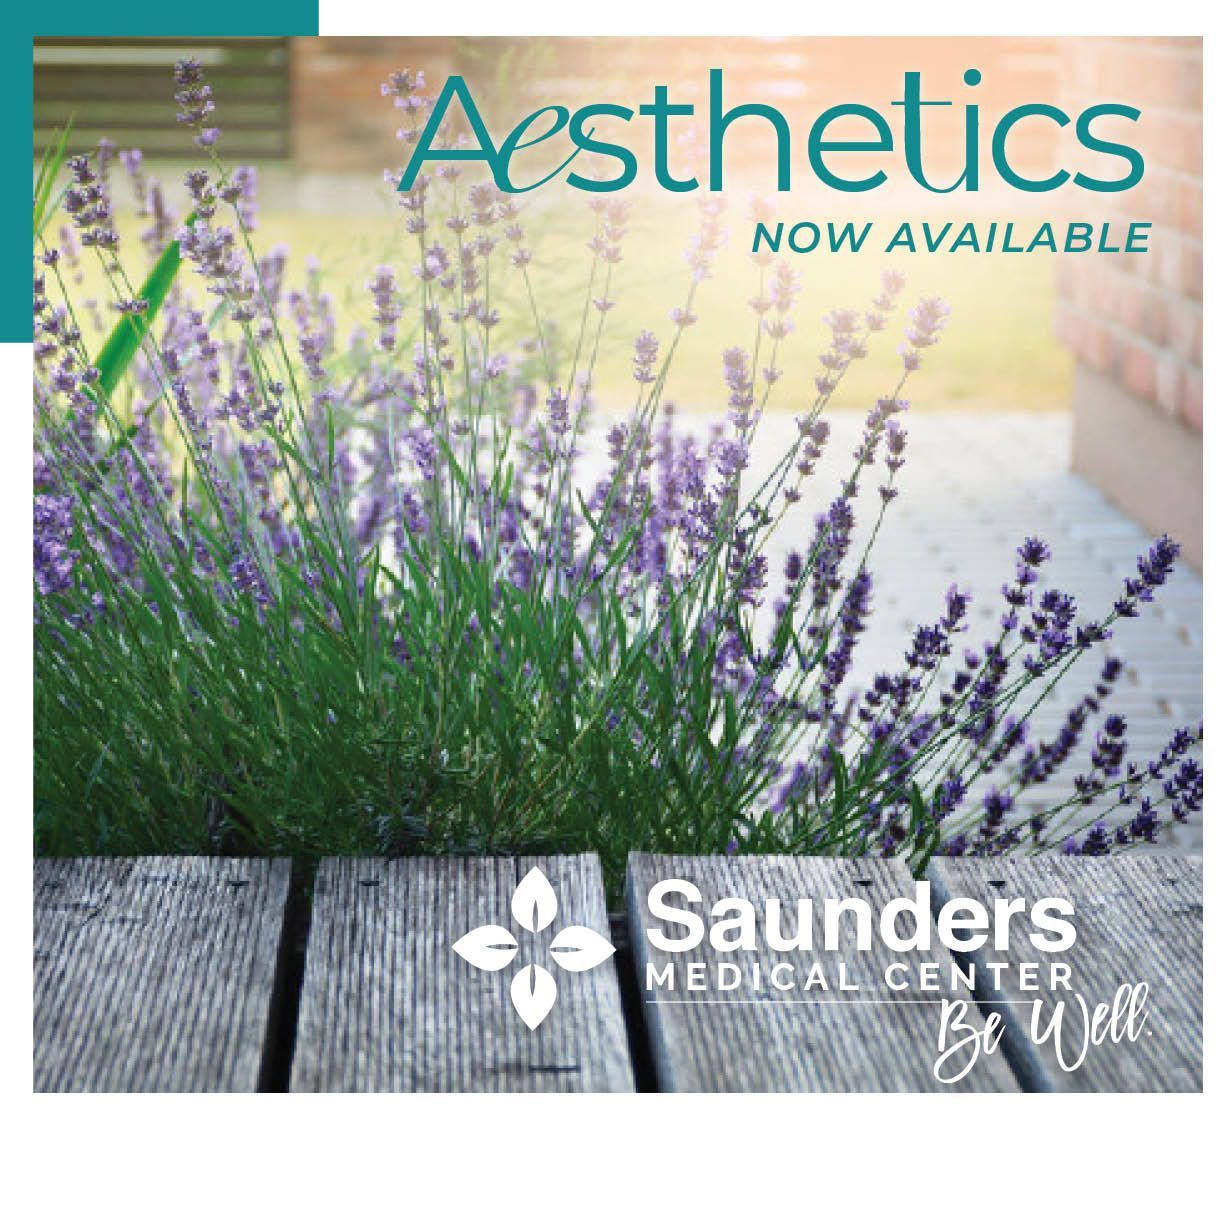 Aesthetics Now Available